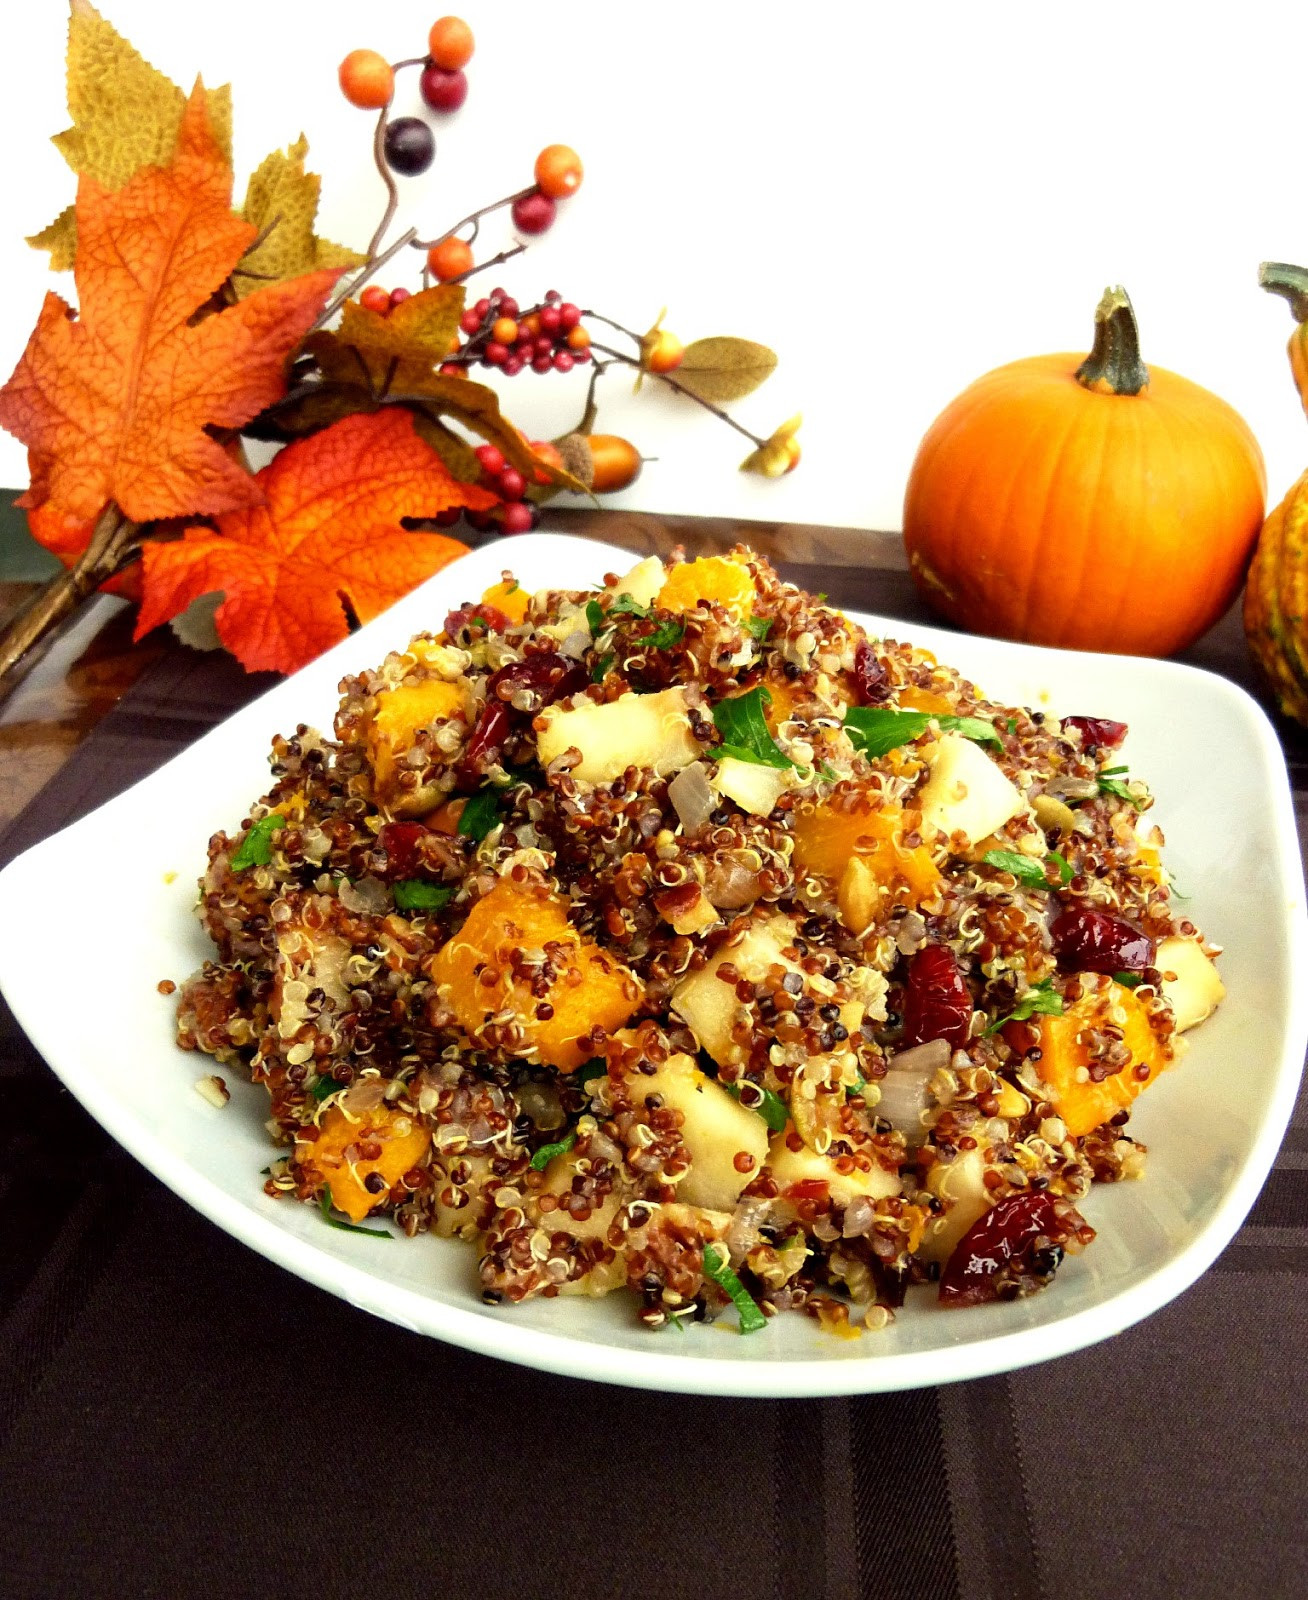 Vegetarian Main Dish For Thanksgiving  Vanilla & Spice Recipes for a Ve arian Thanksgiving